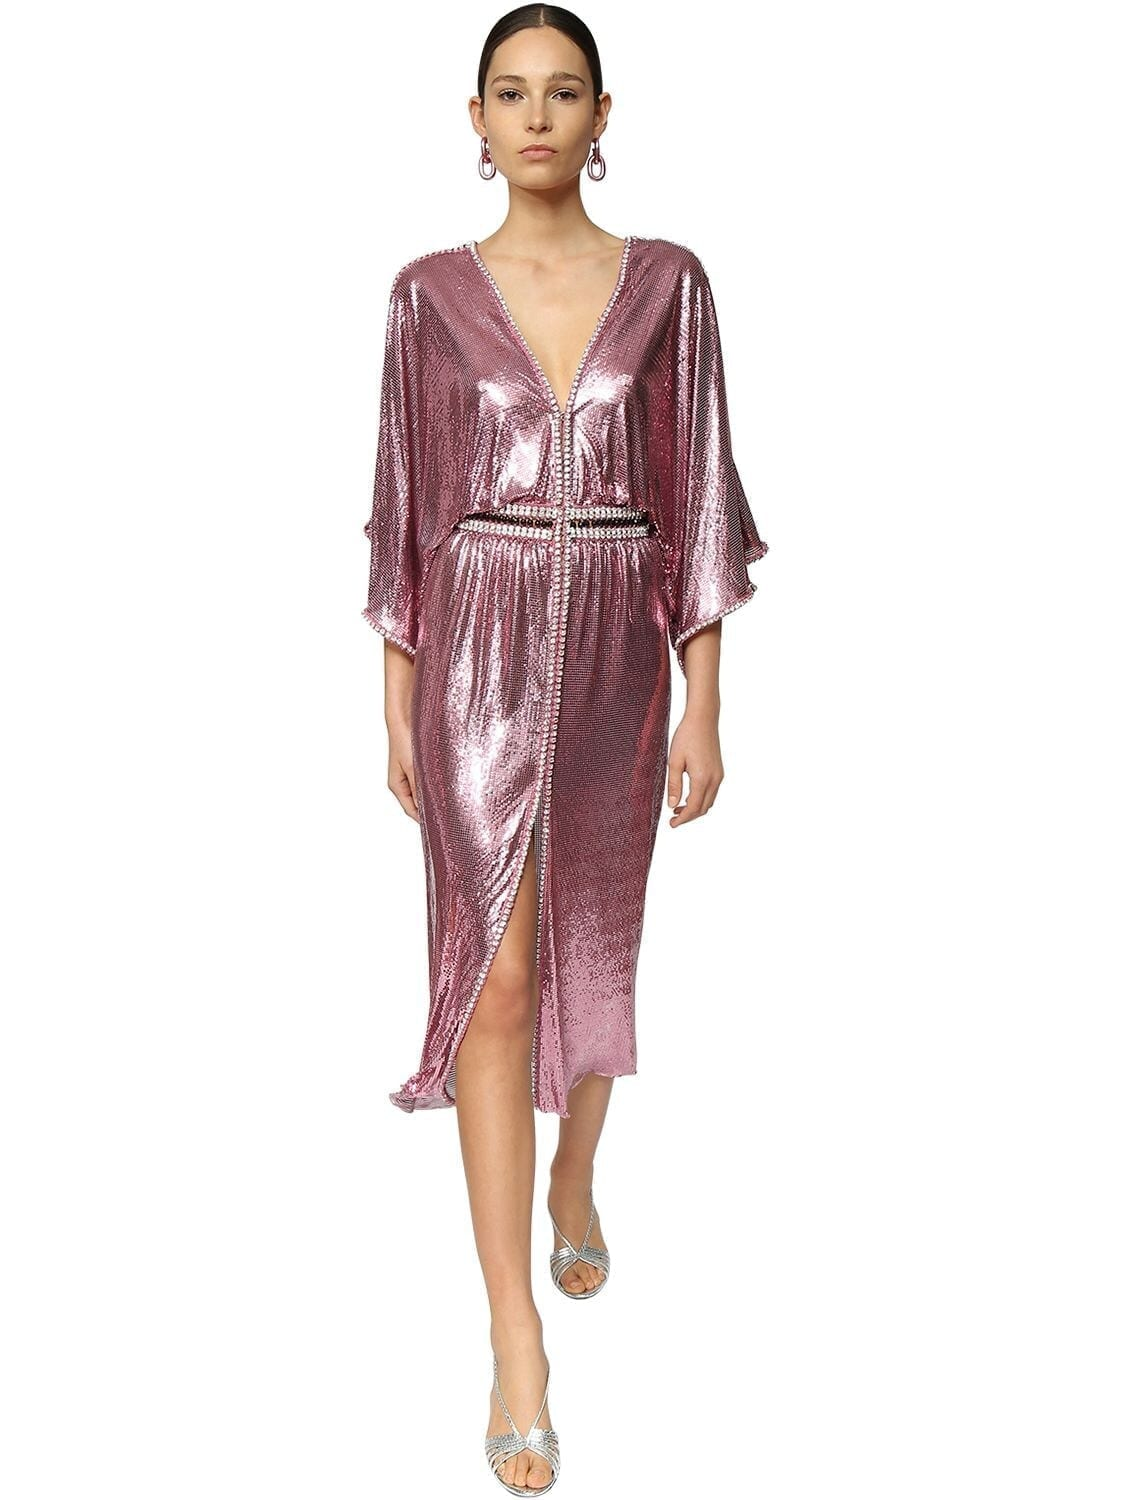 PACO RABANNE Crystals & Metal Mesh Midi Dress